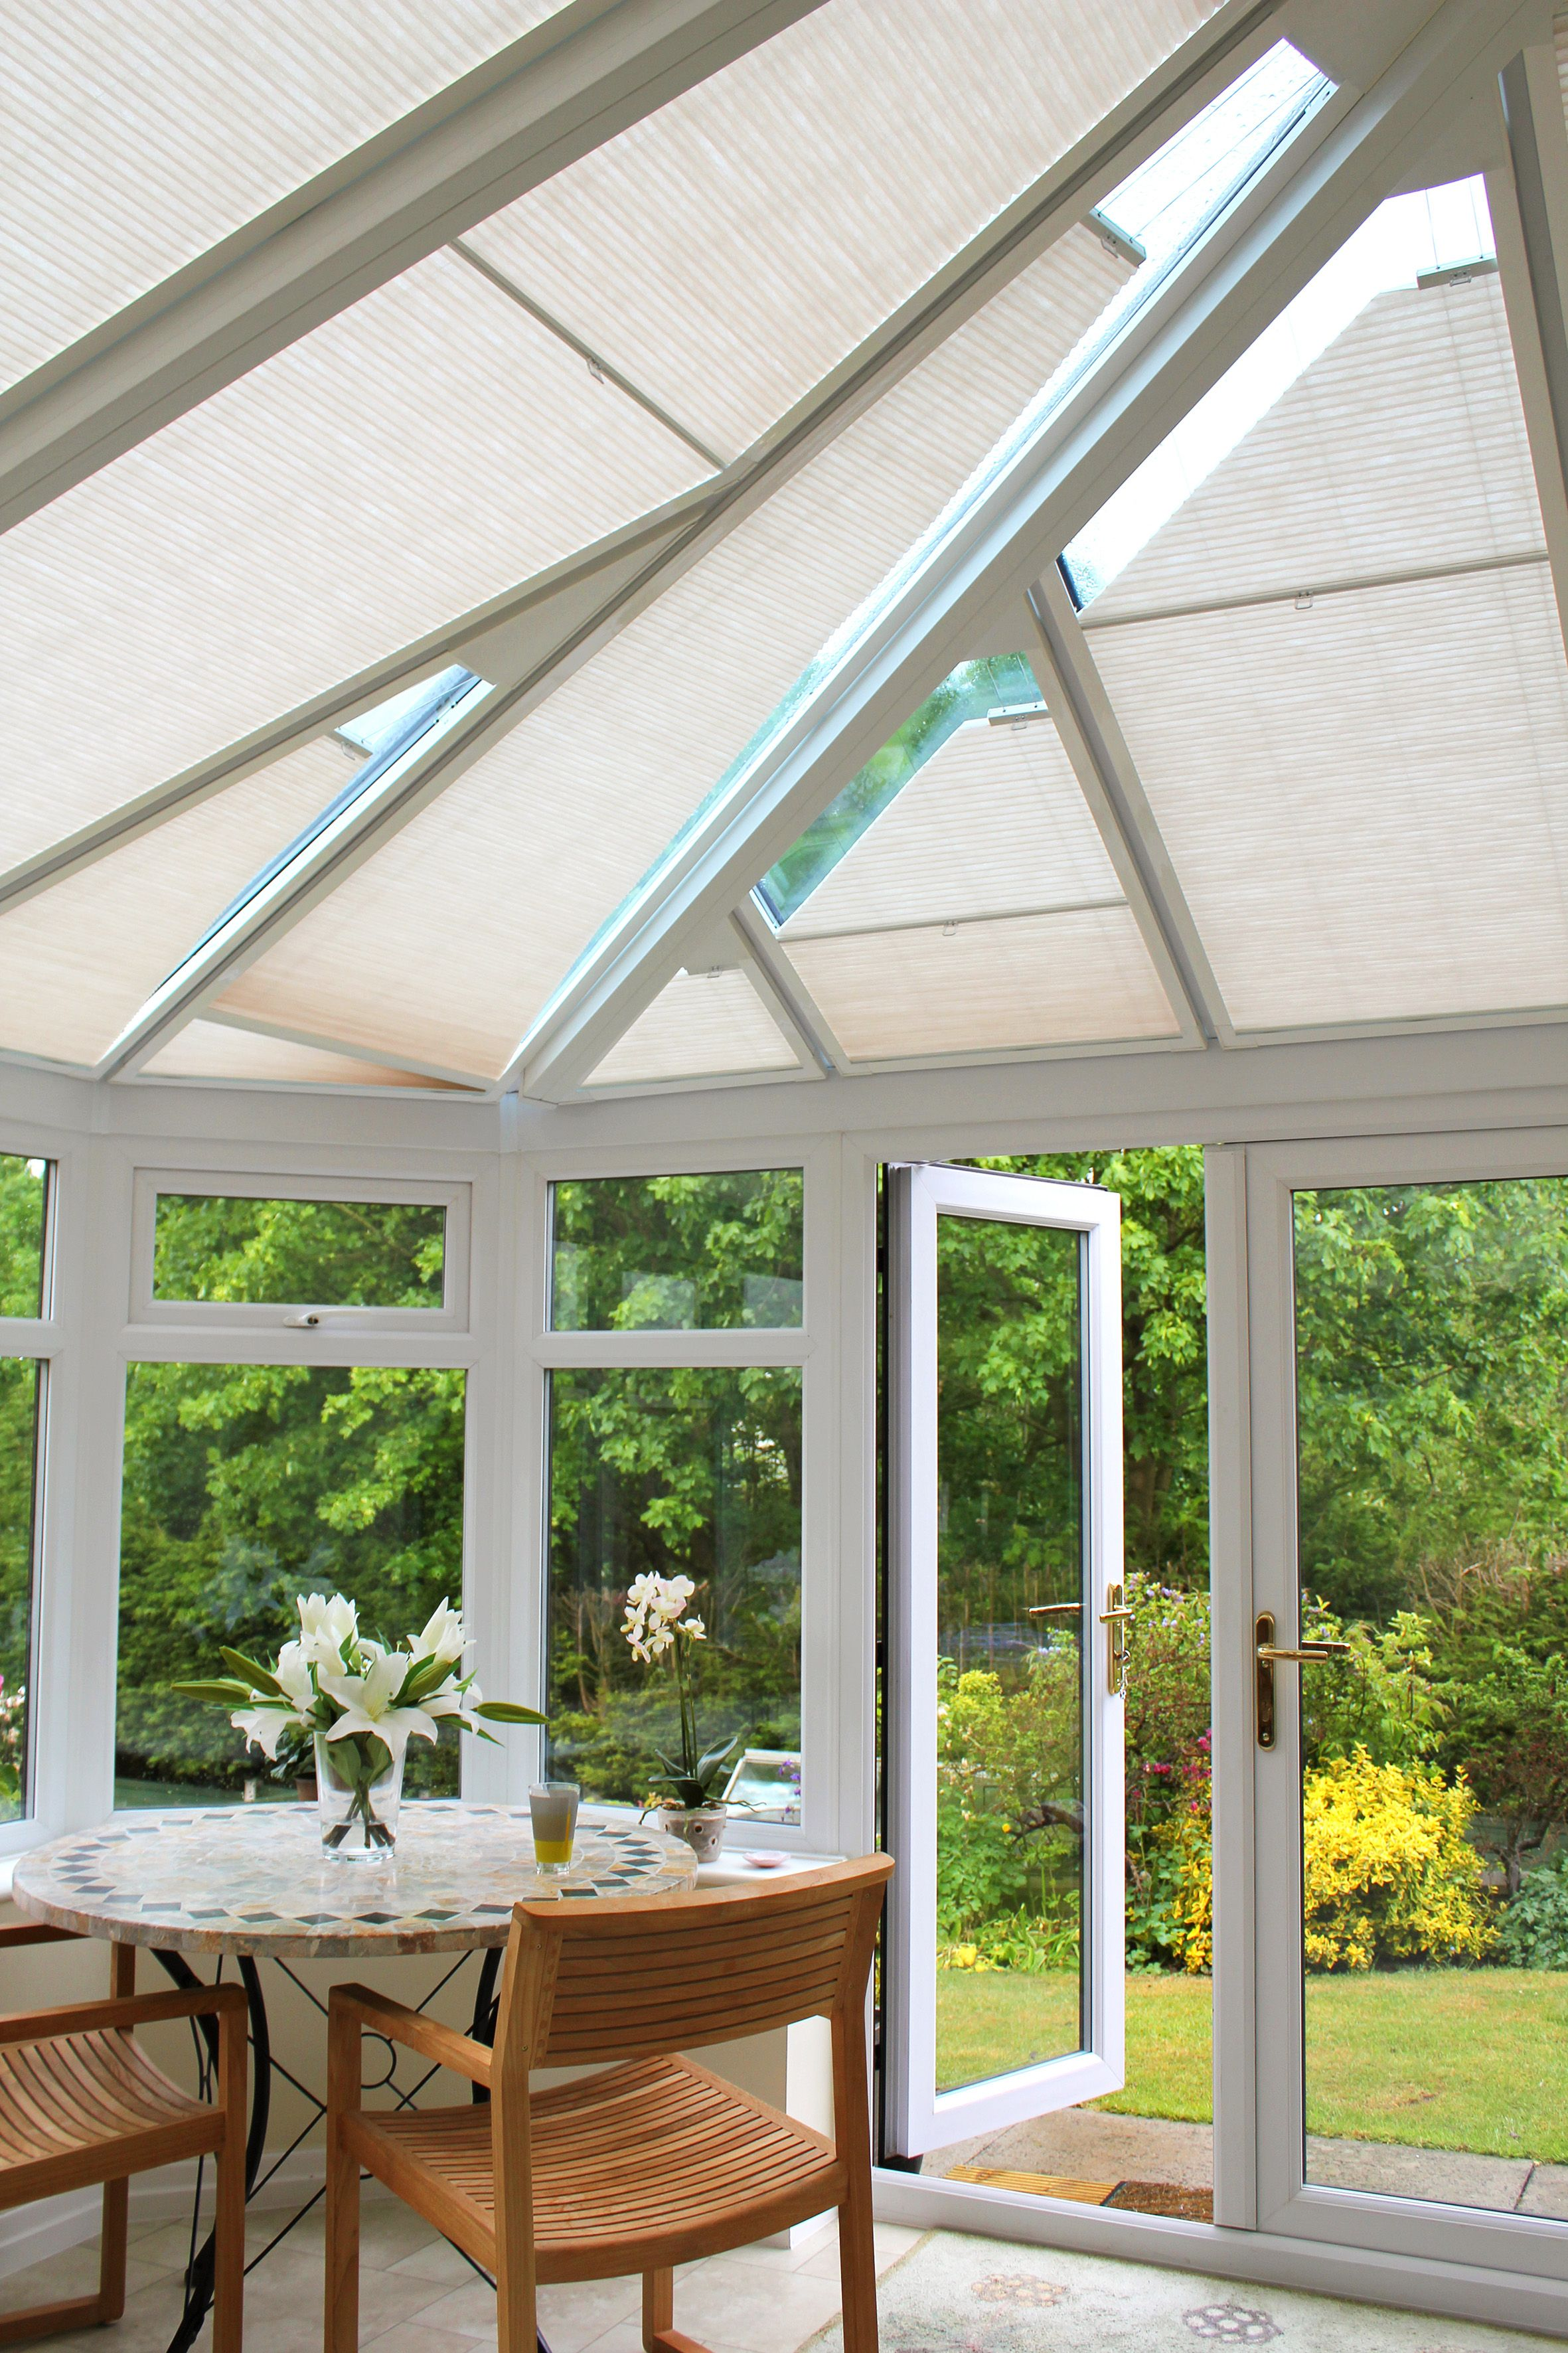 Luxaflex Conservatory Shades Come In Stylish Textures And An Exquisite Colour Palette Conservatory Blinds Don T Have B Pergola Shade Pergola Lighting Pergola